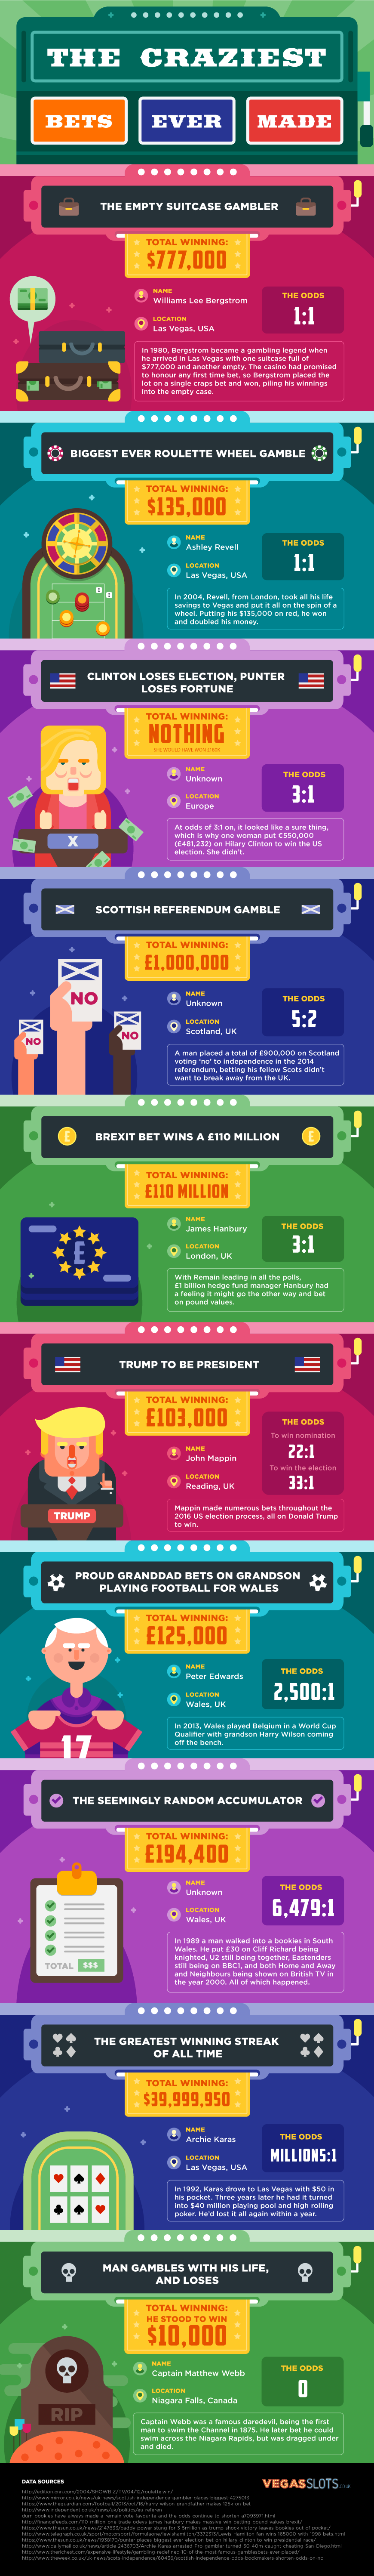 Unbelievable Bets That Have Been Made - Infographic